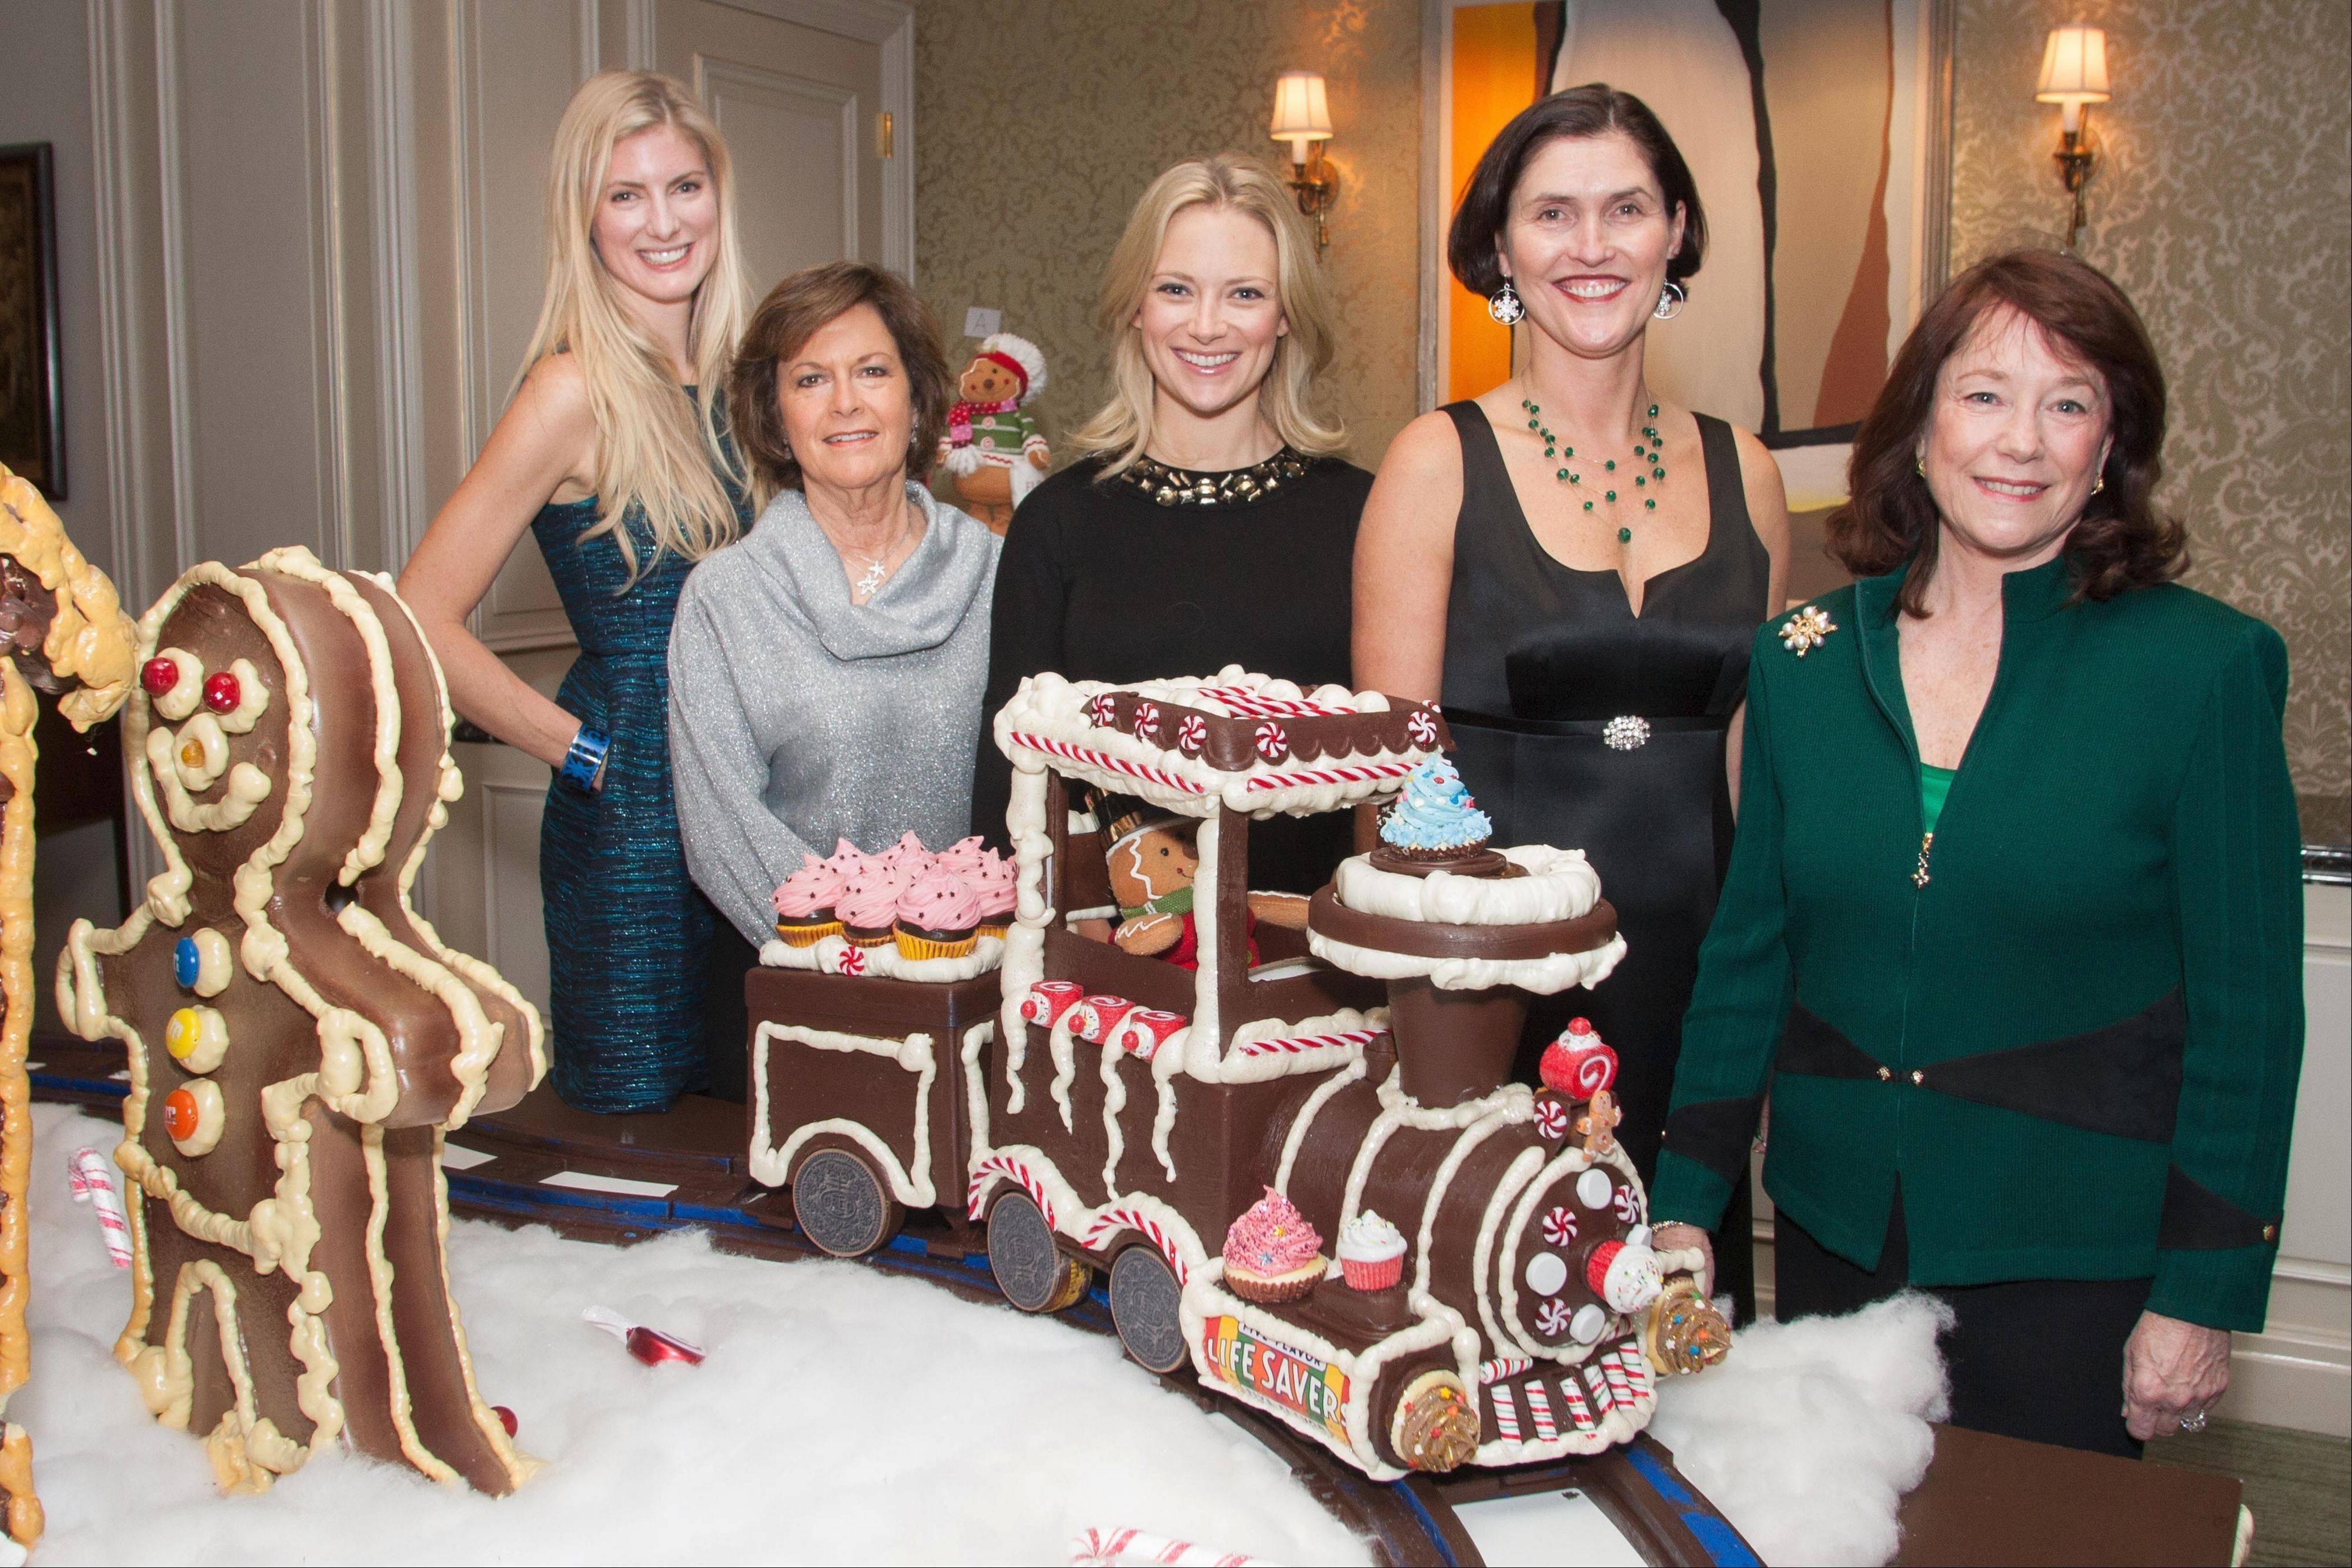 Event Co-chairwoman Meghan Norton, WINGS board Chairman Rita Canning, event Co-chairwoman Anna Bilton, WINGS Chief Executive Officer Rebecca Darr and honorary Co-chairman Jackie Tilton at the WINGS �Sweet Home Chicago� gala.